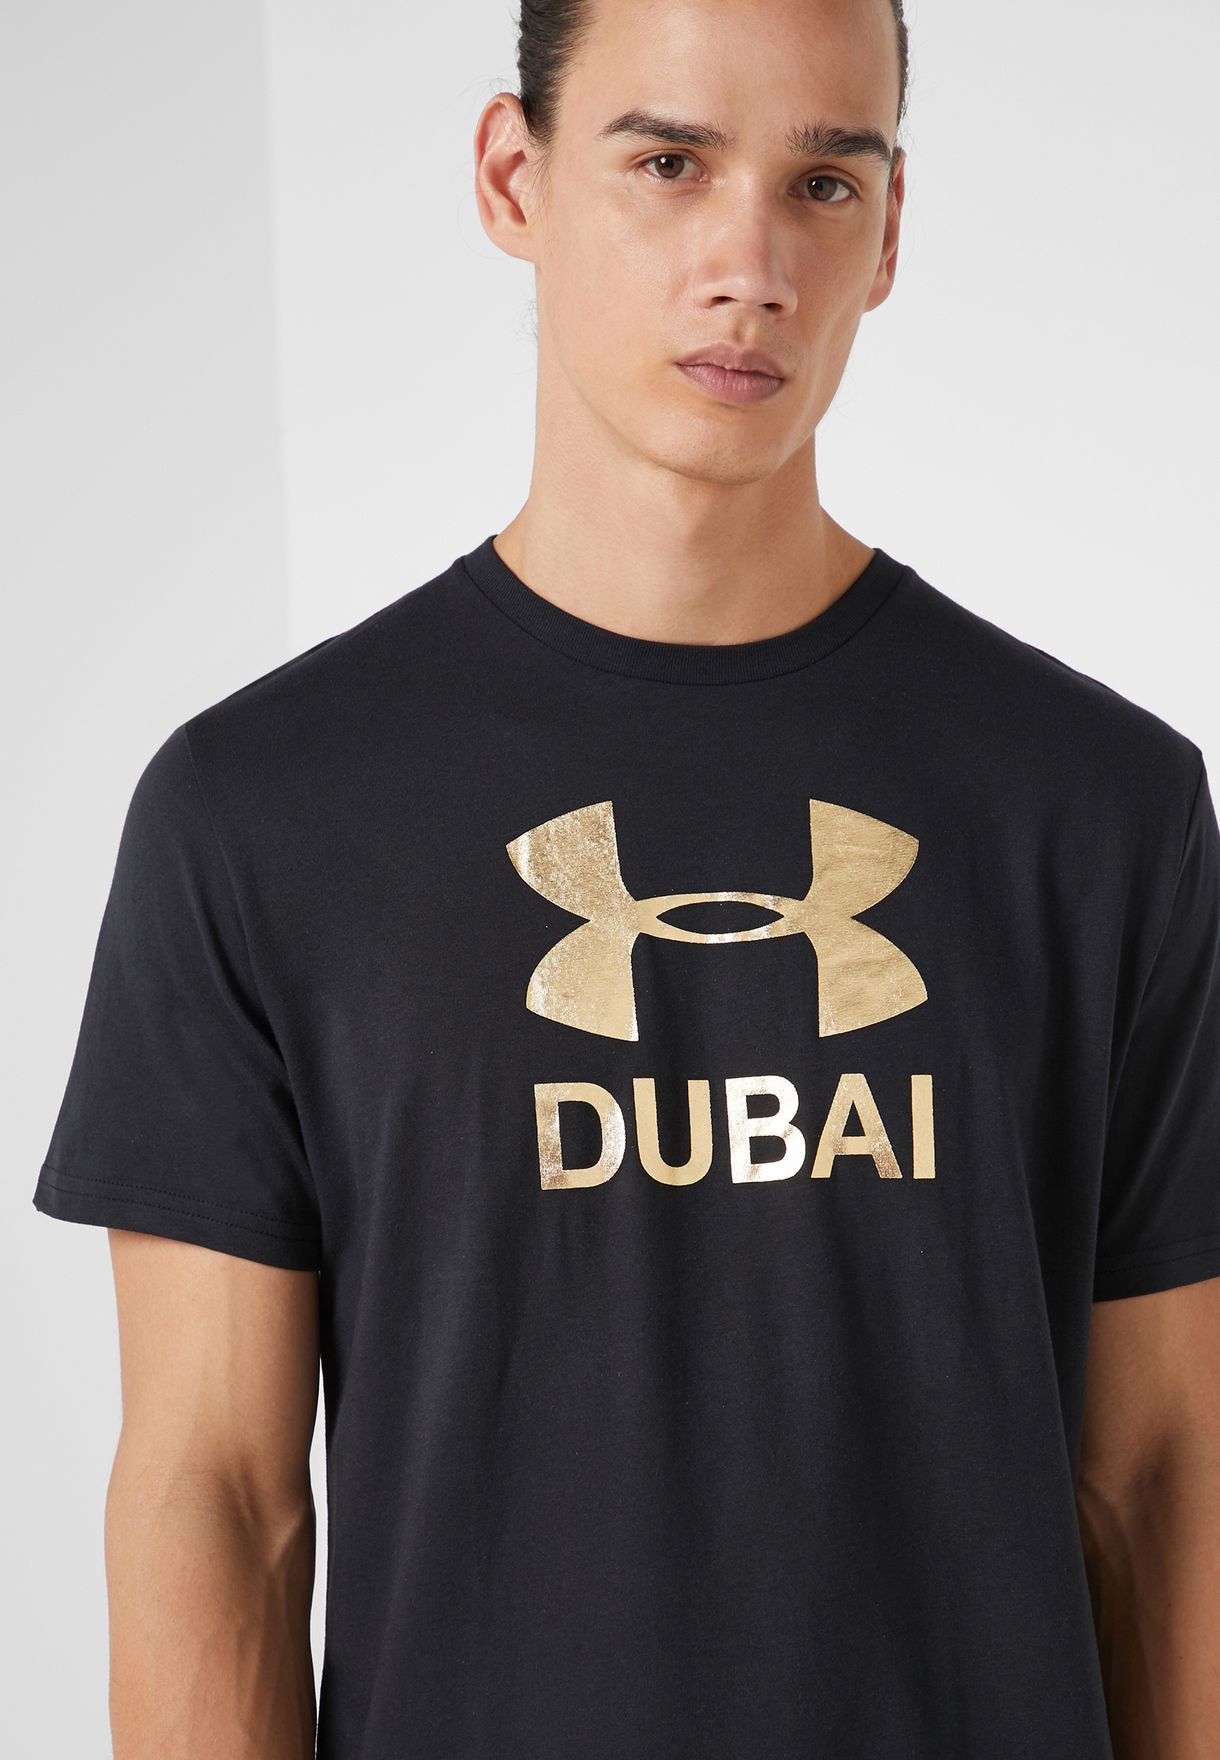 Dubai Graphic T-Shirt